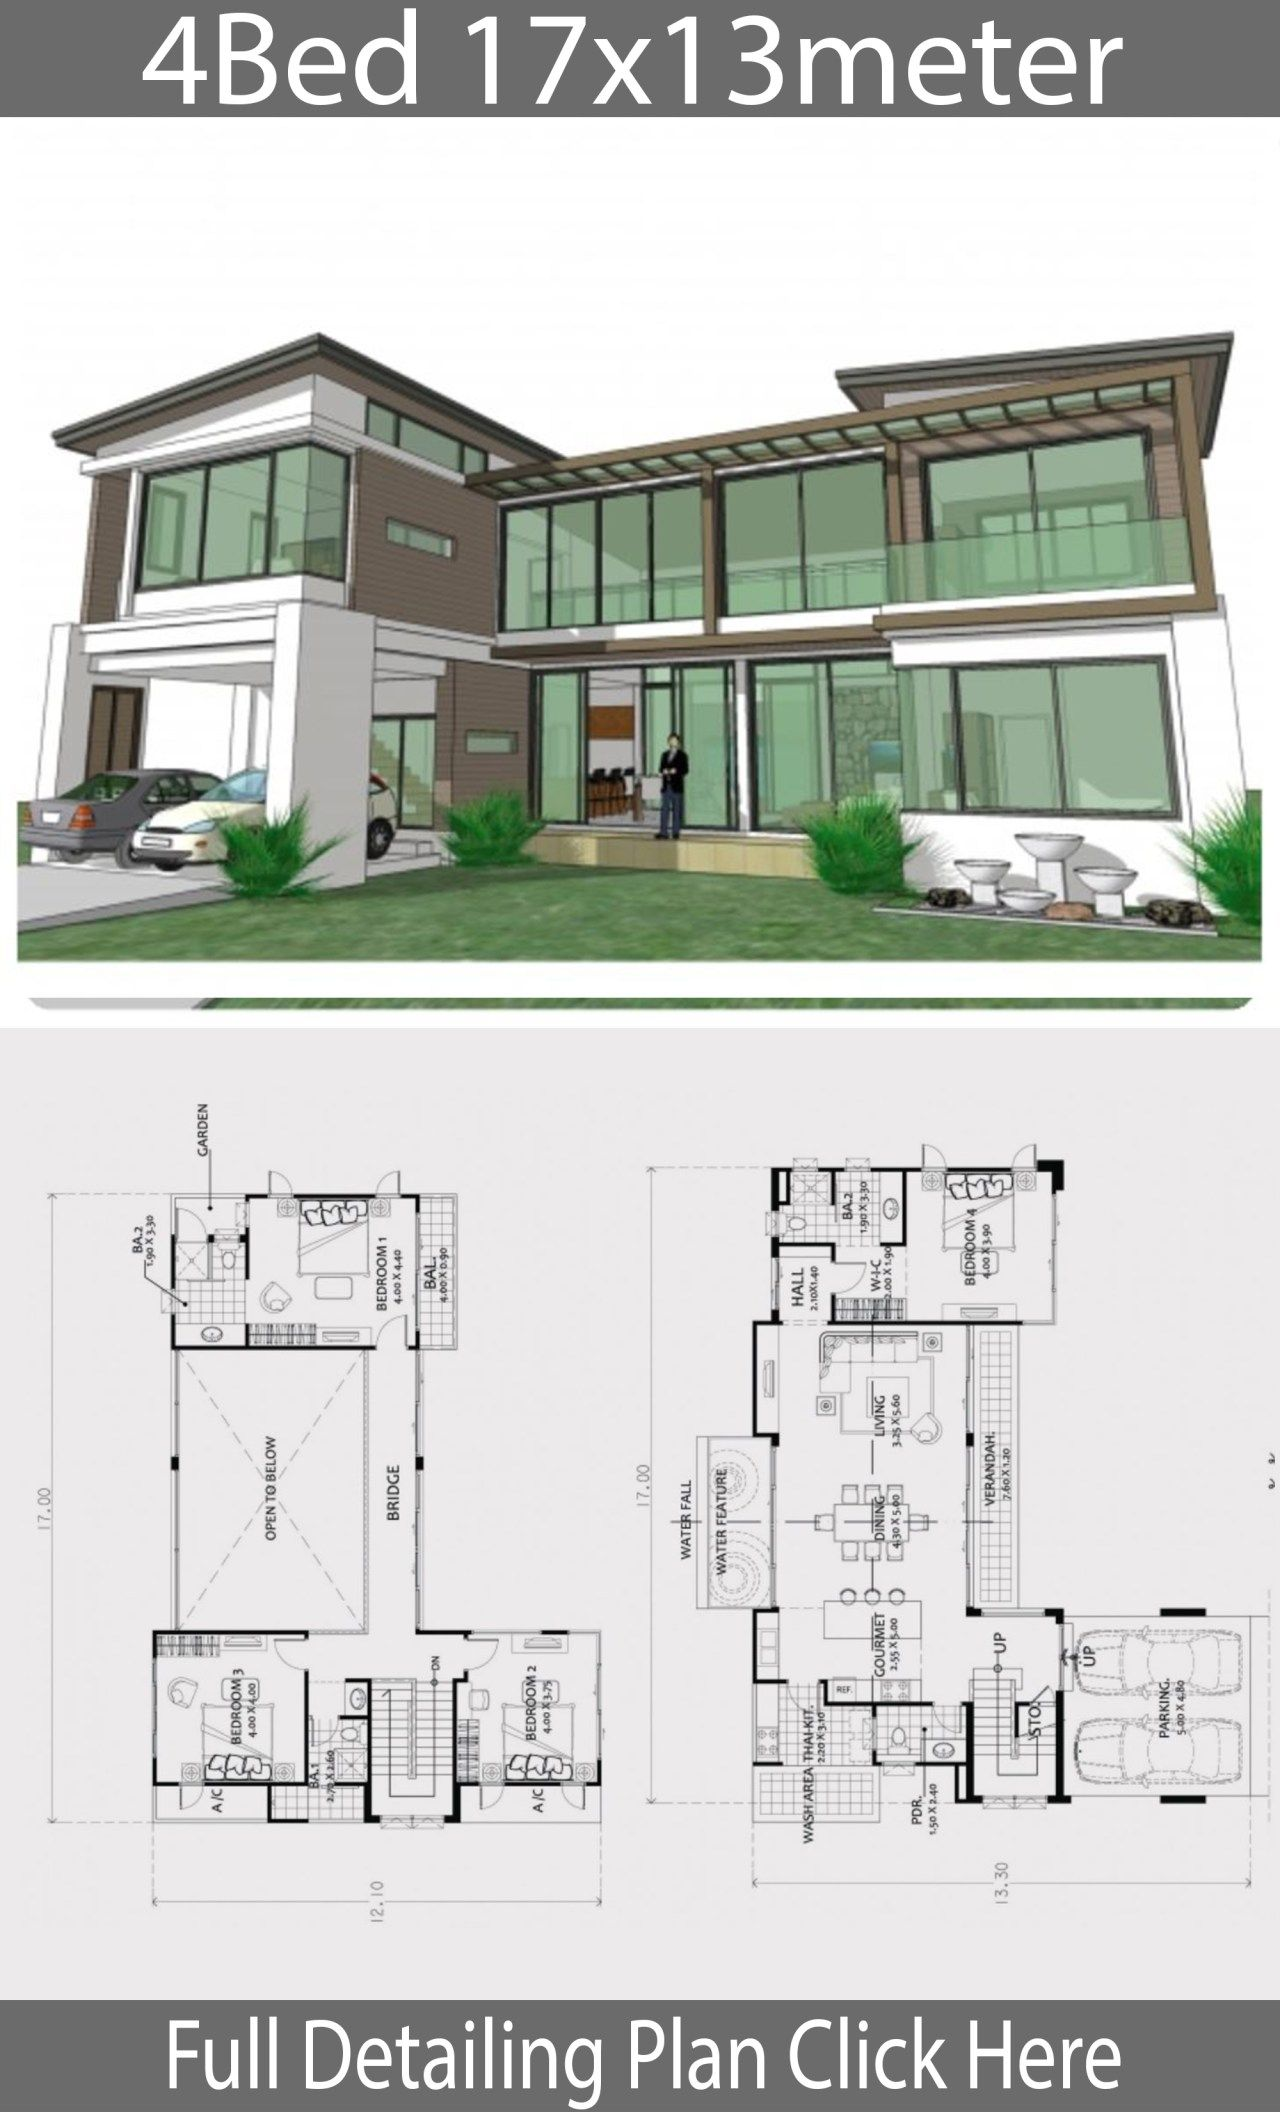 Home Design Plan 17x13m With 4 Bedrooms Home Ideas Beautiful House Plans Two Story House Design Home Design Plan